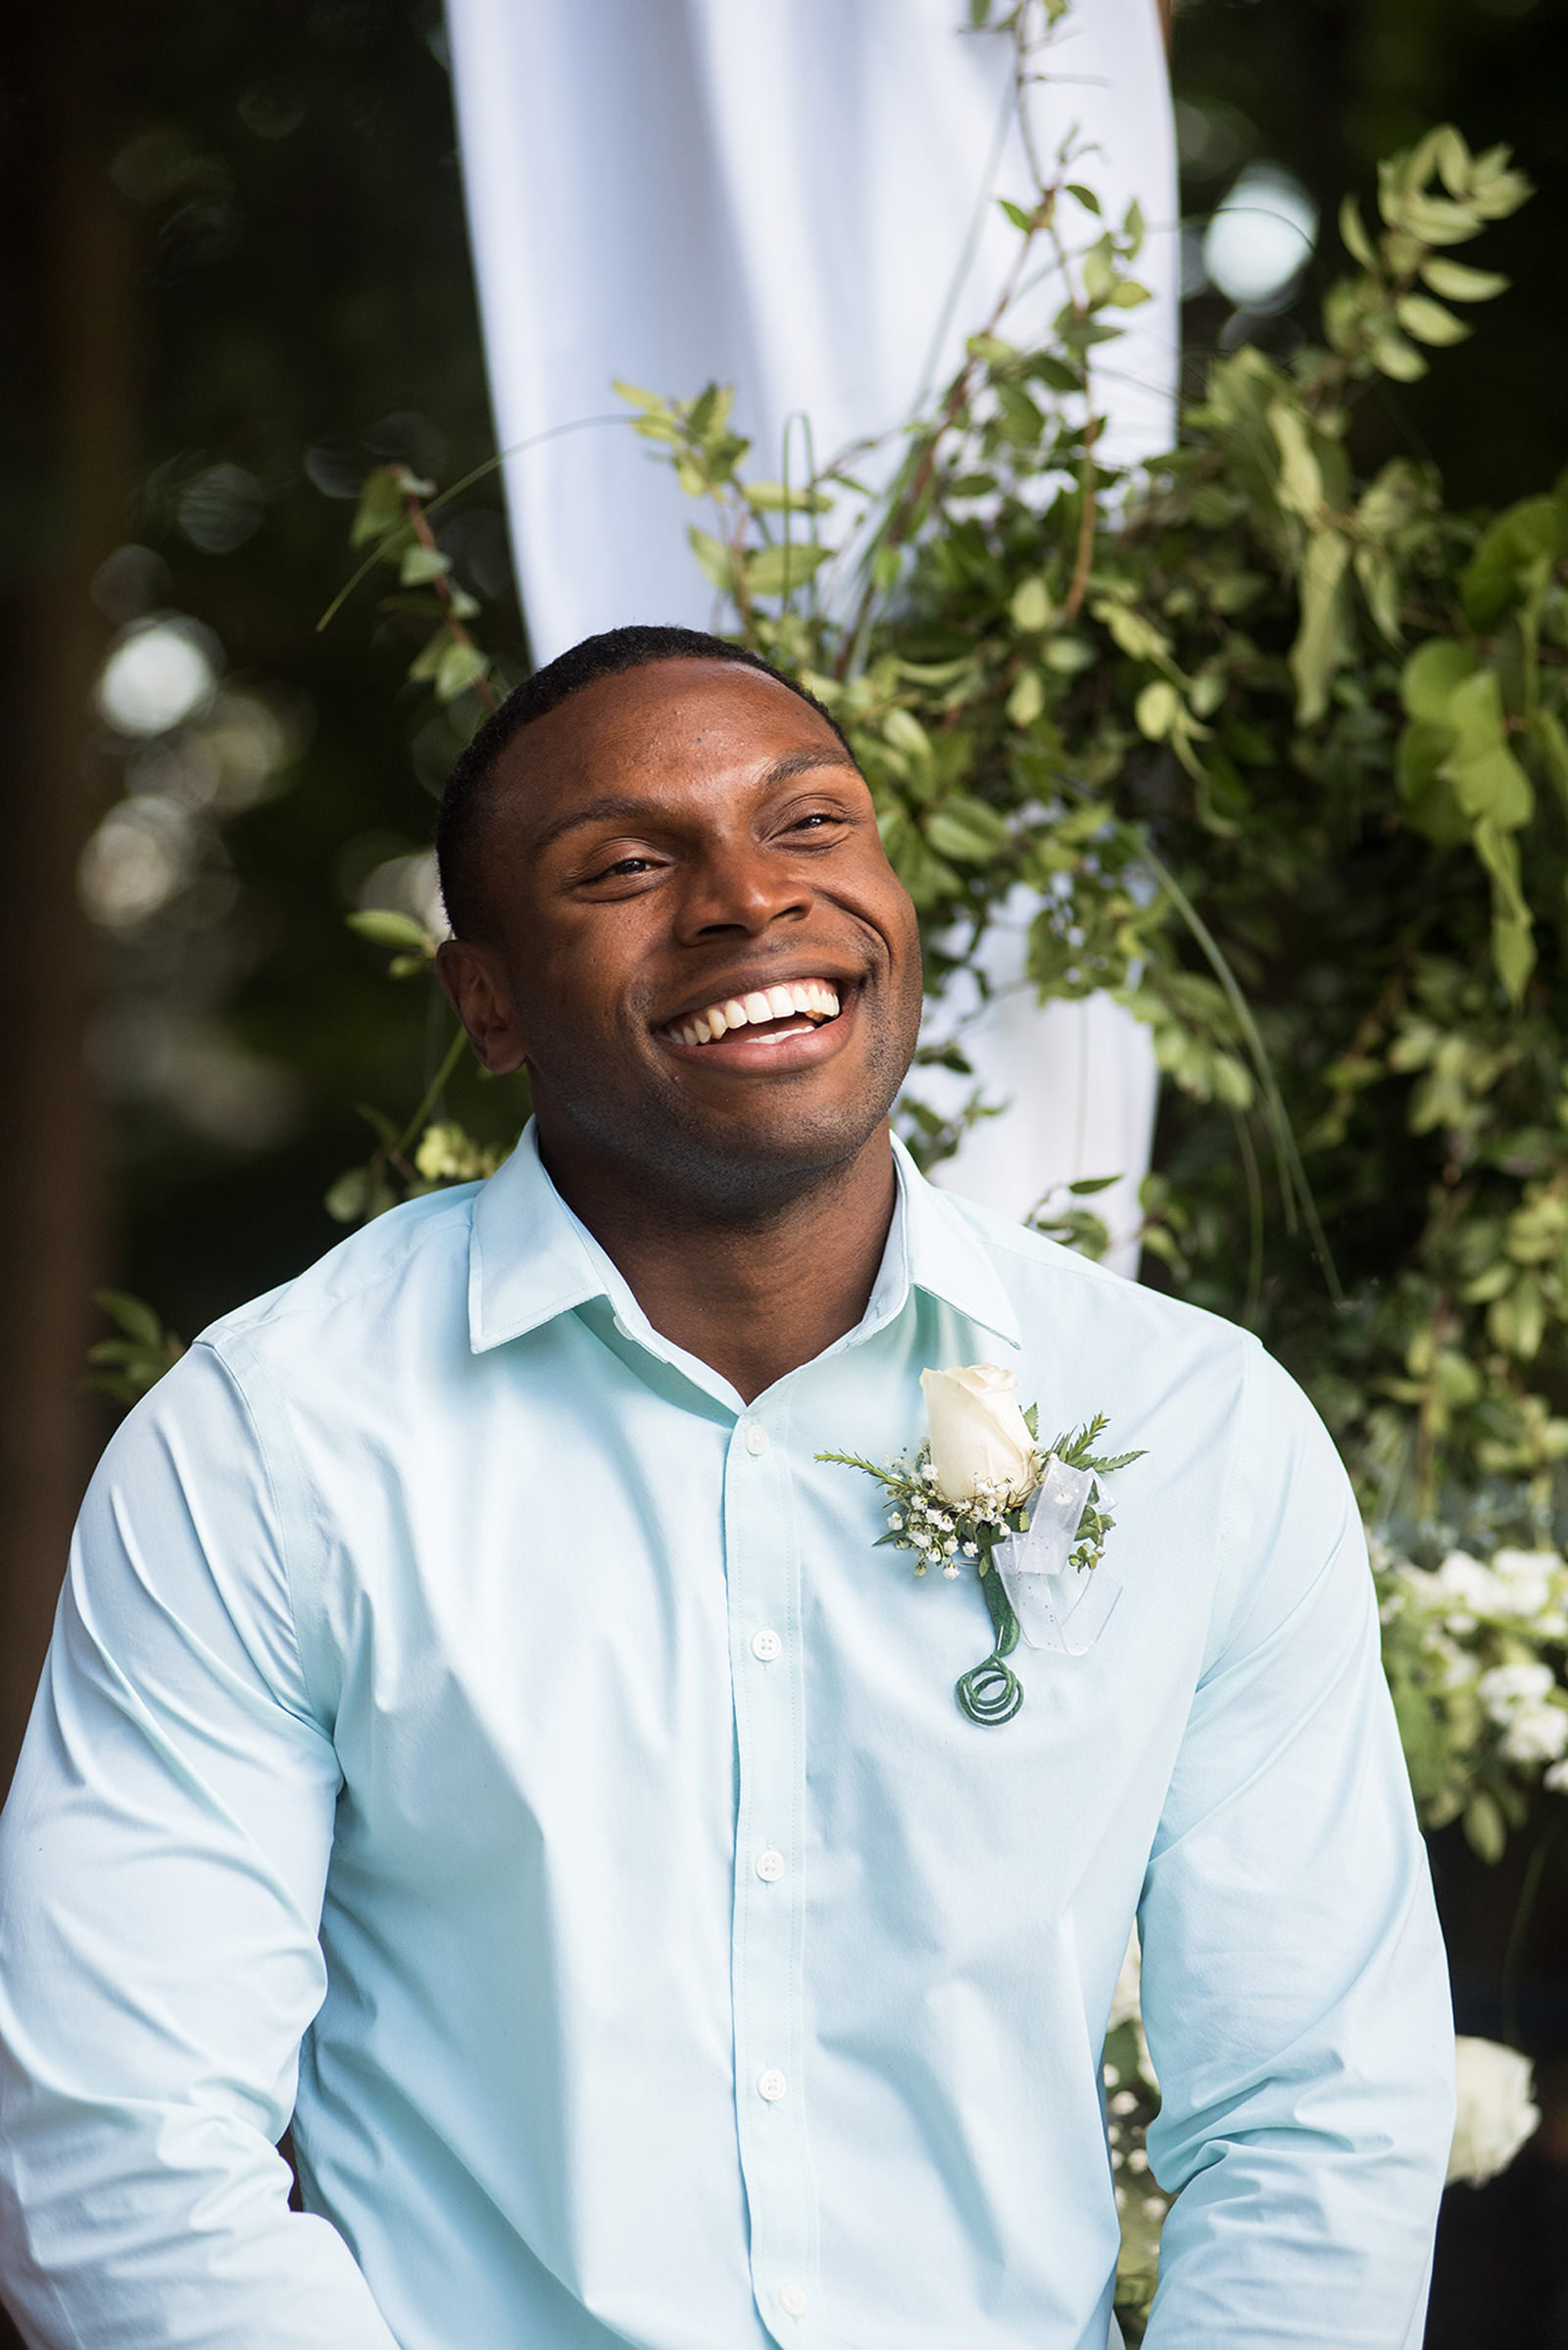 Groom smiling - photo by Barbie Hull Photography